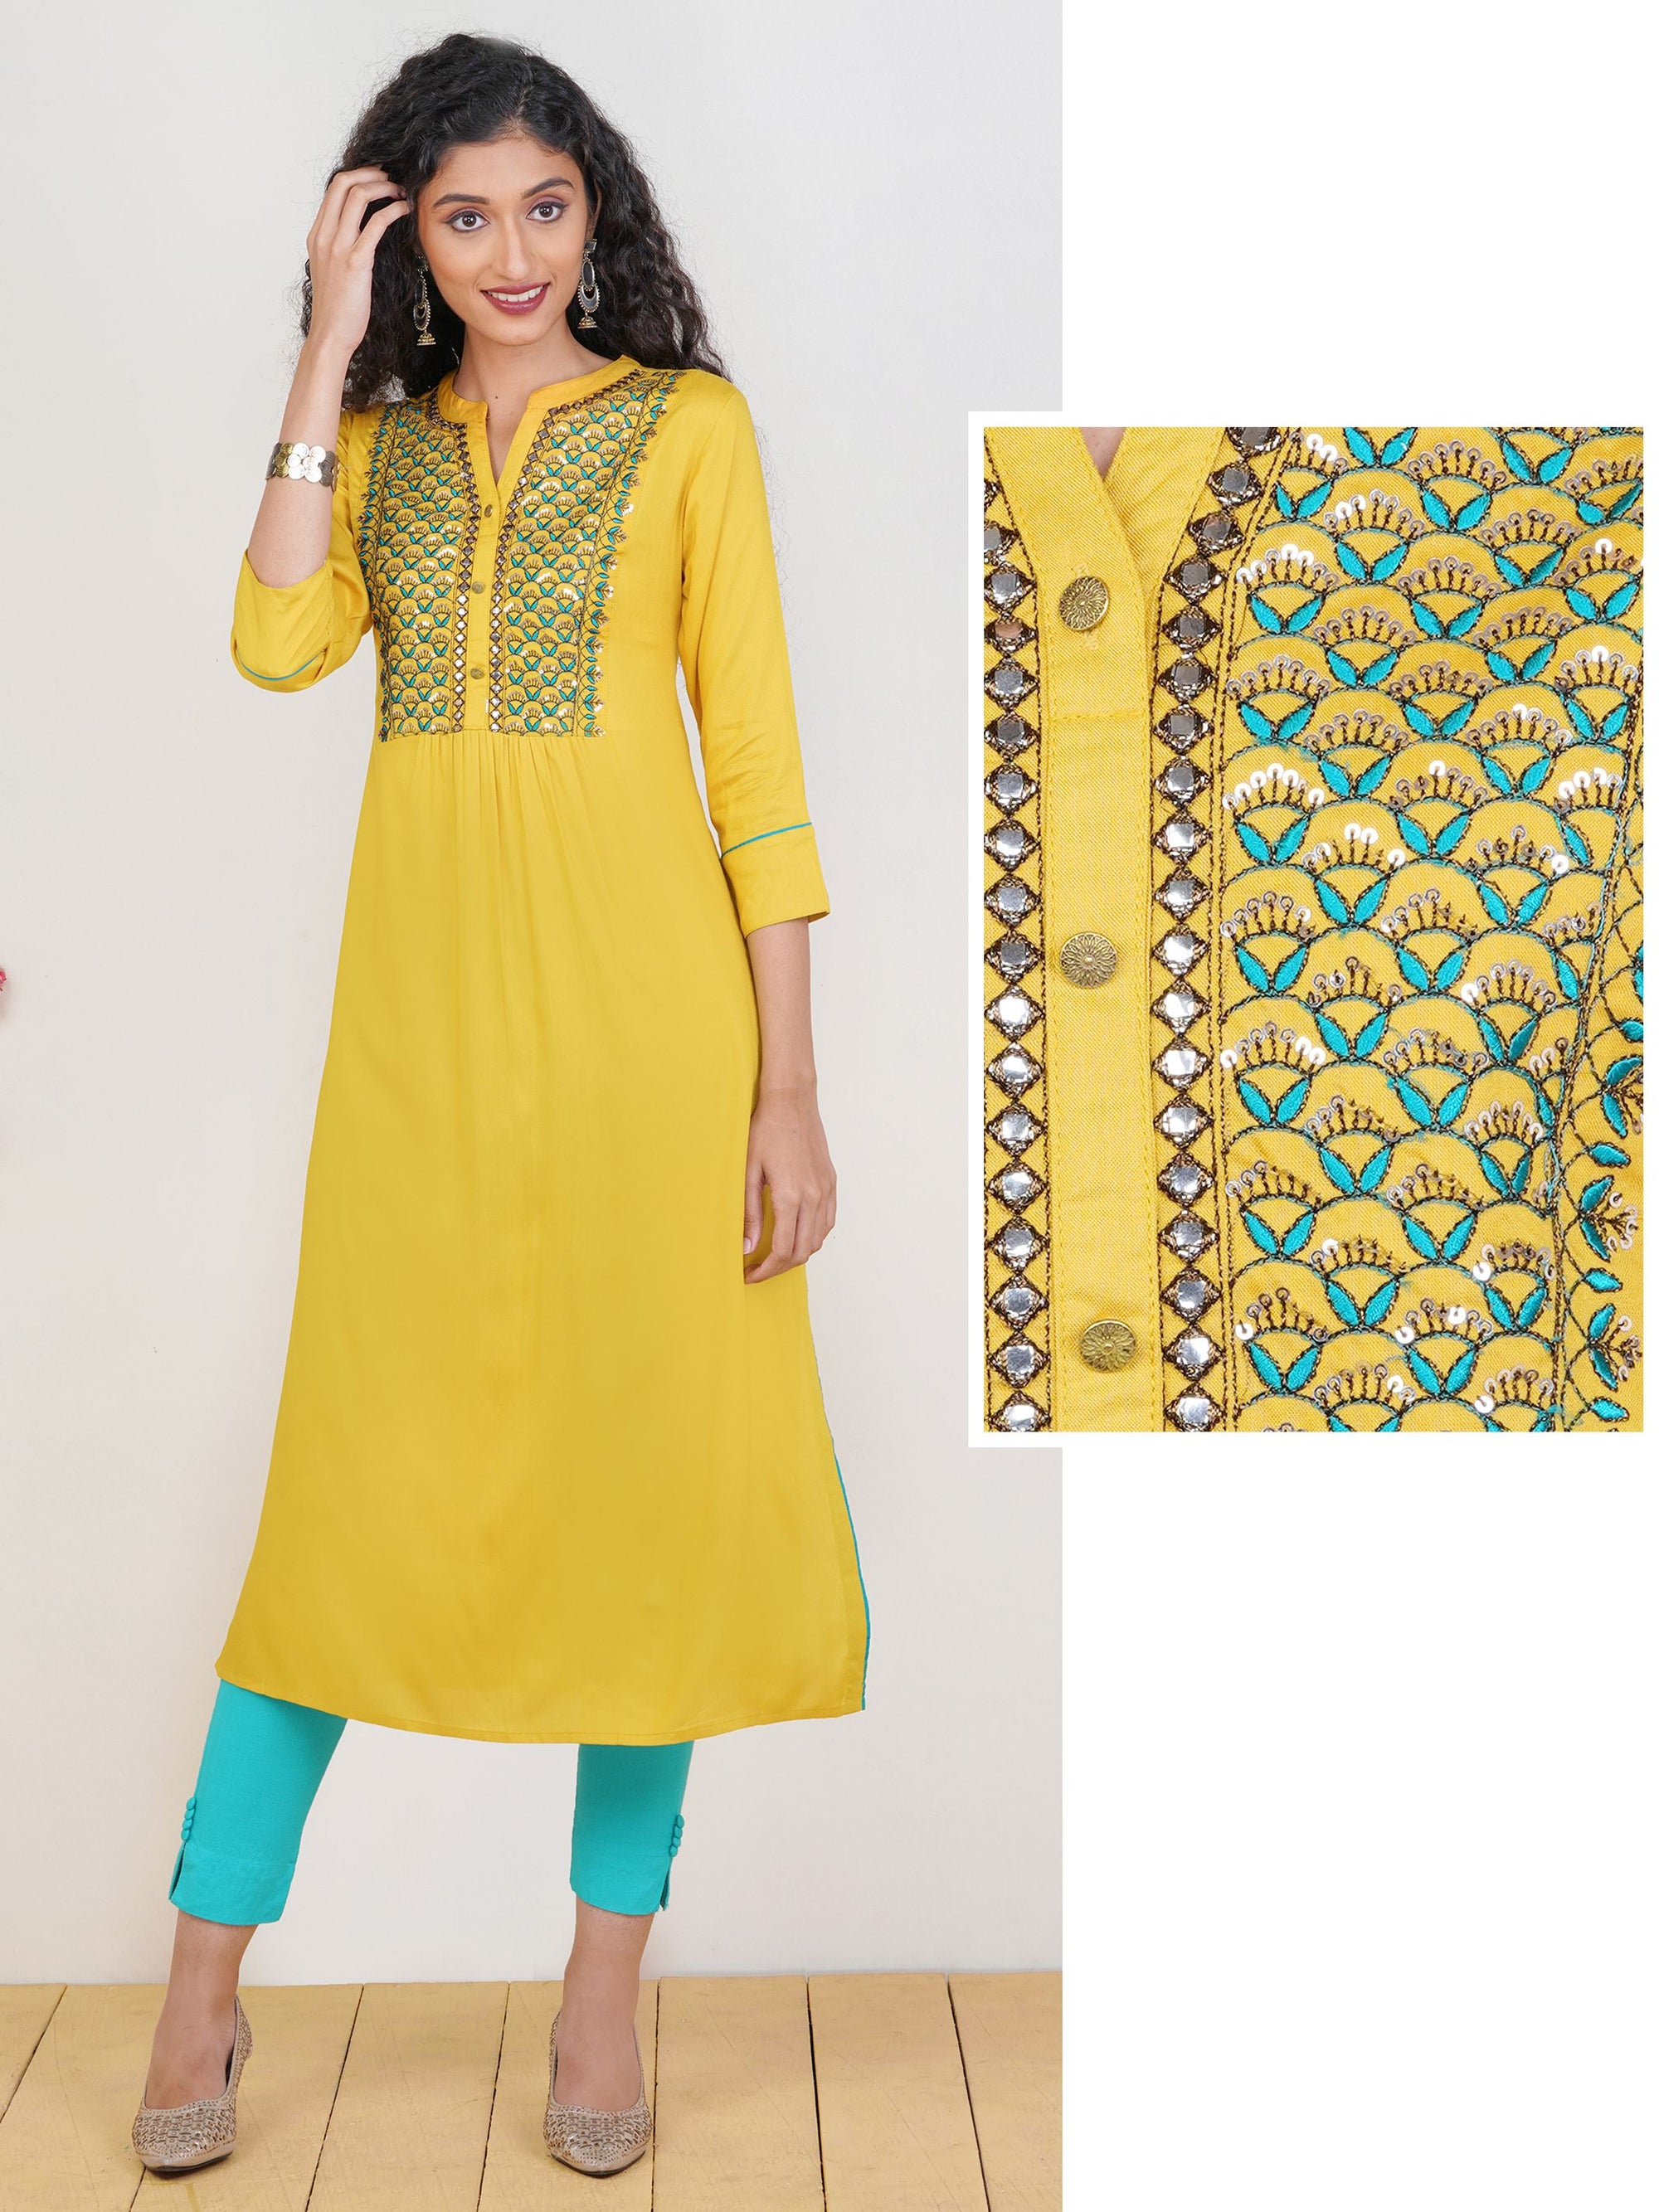 Sequins & Leaf Embroidered Rayon Kurti – Mustard